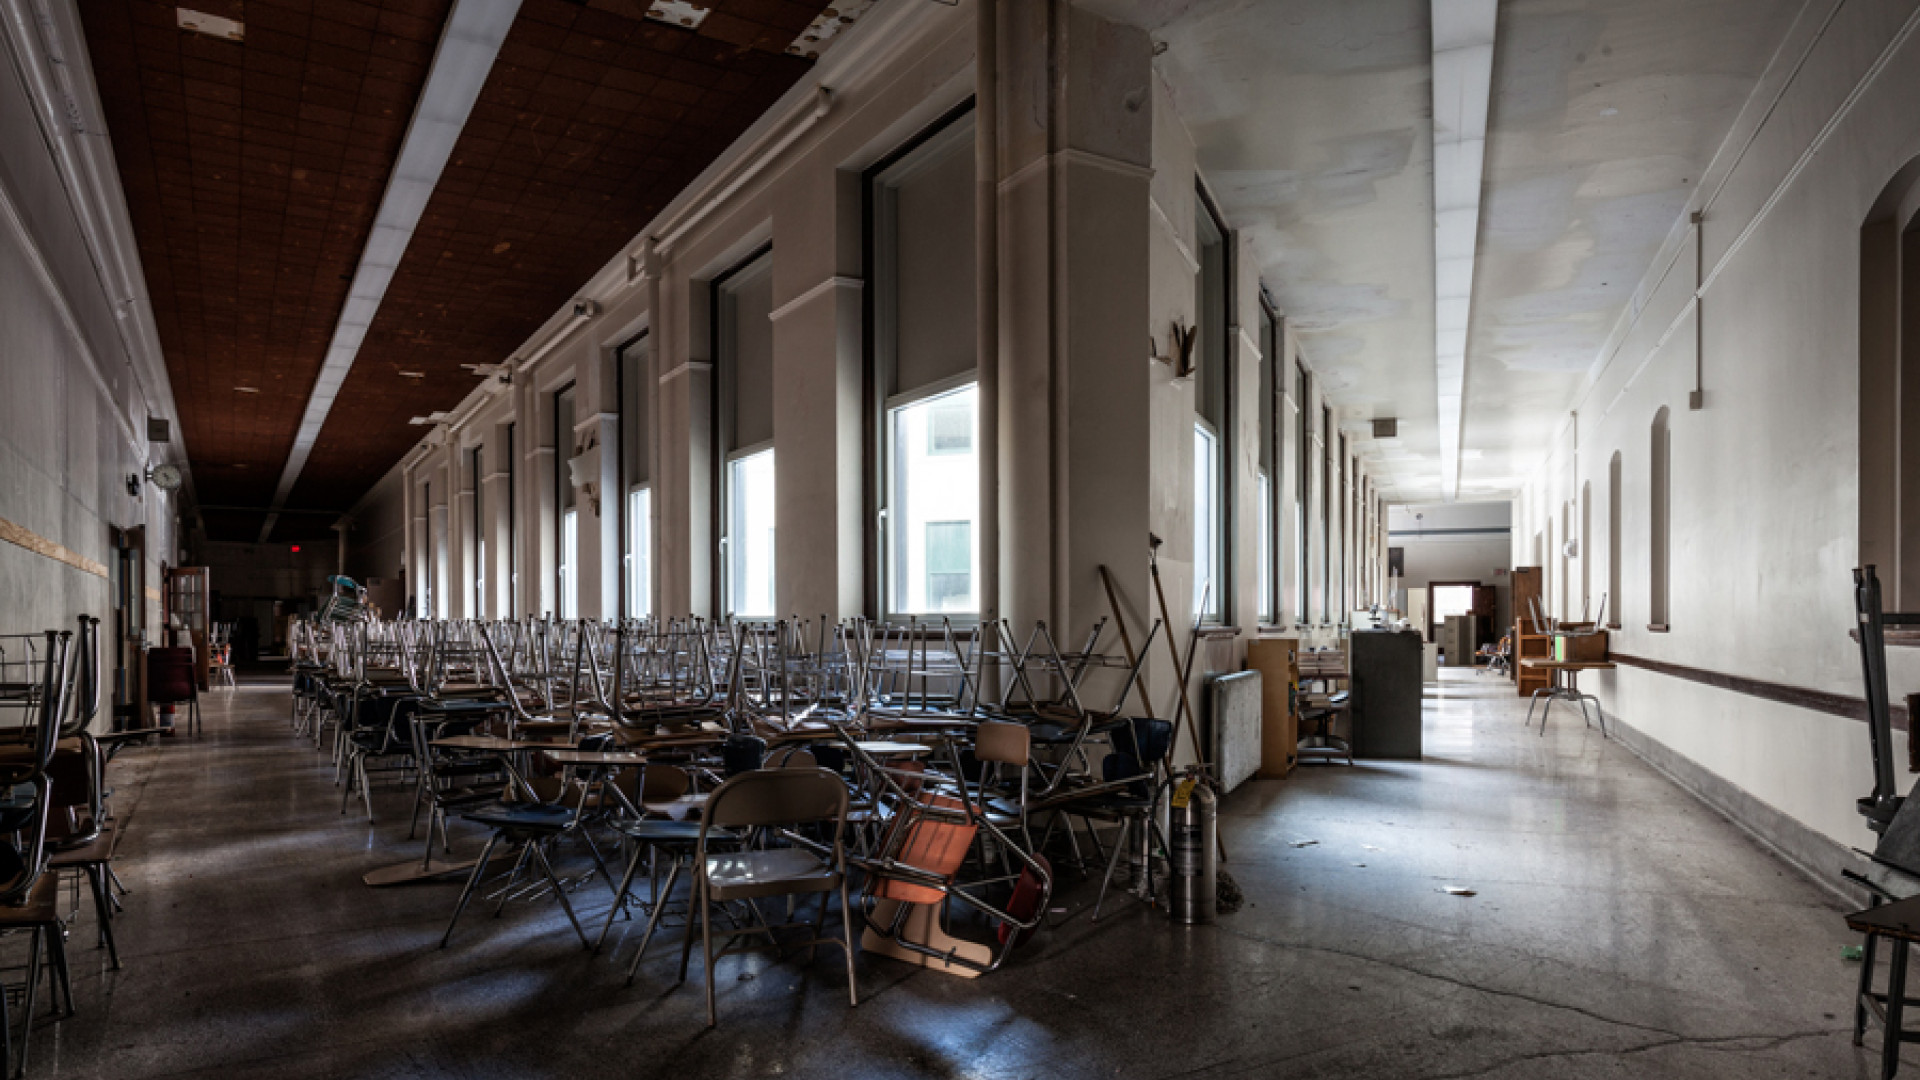 Chairs stacked inside the abandoned Schenley High School, Pittsburgh